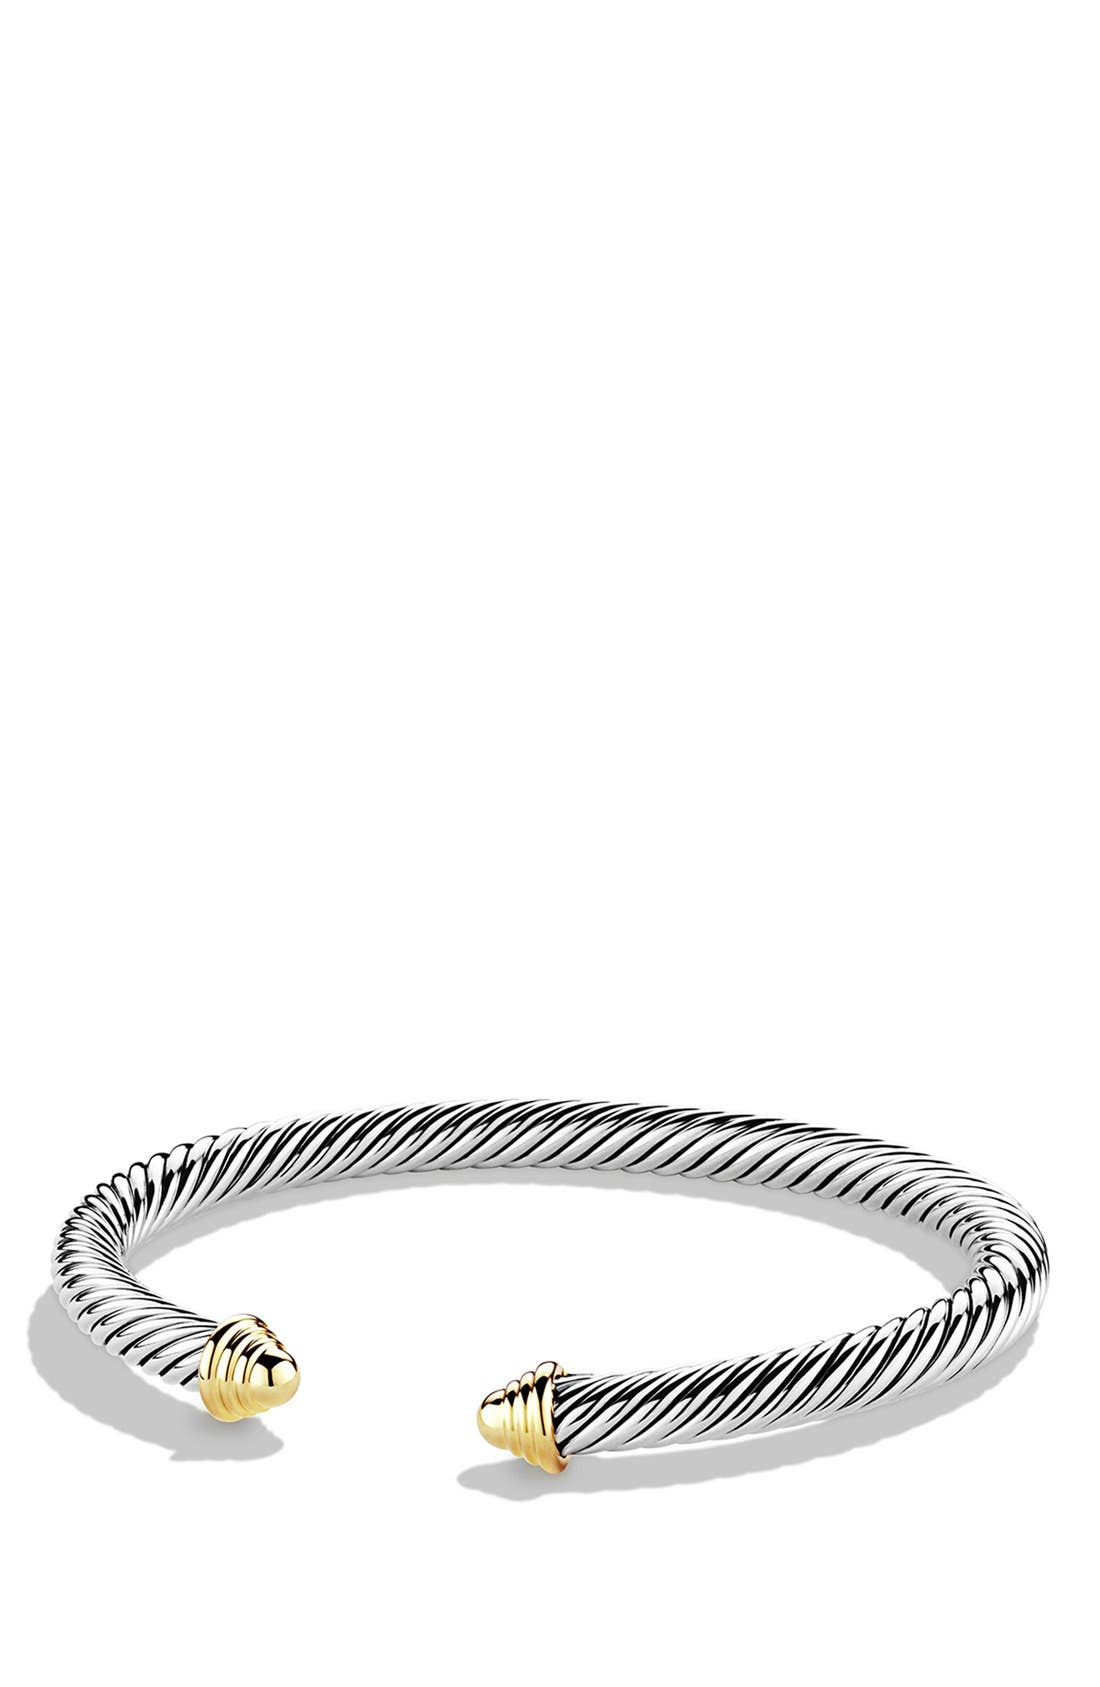 Cable Classics Bracelet with 14K Gold, 5mm,                         Main,                         color, Two Tone